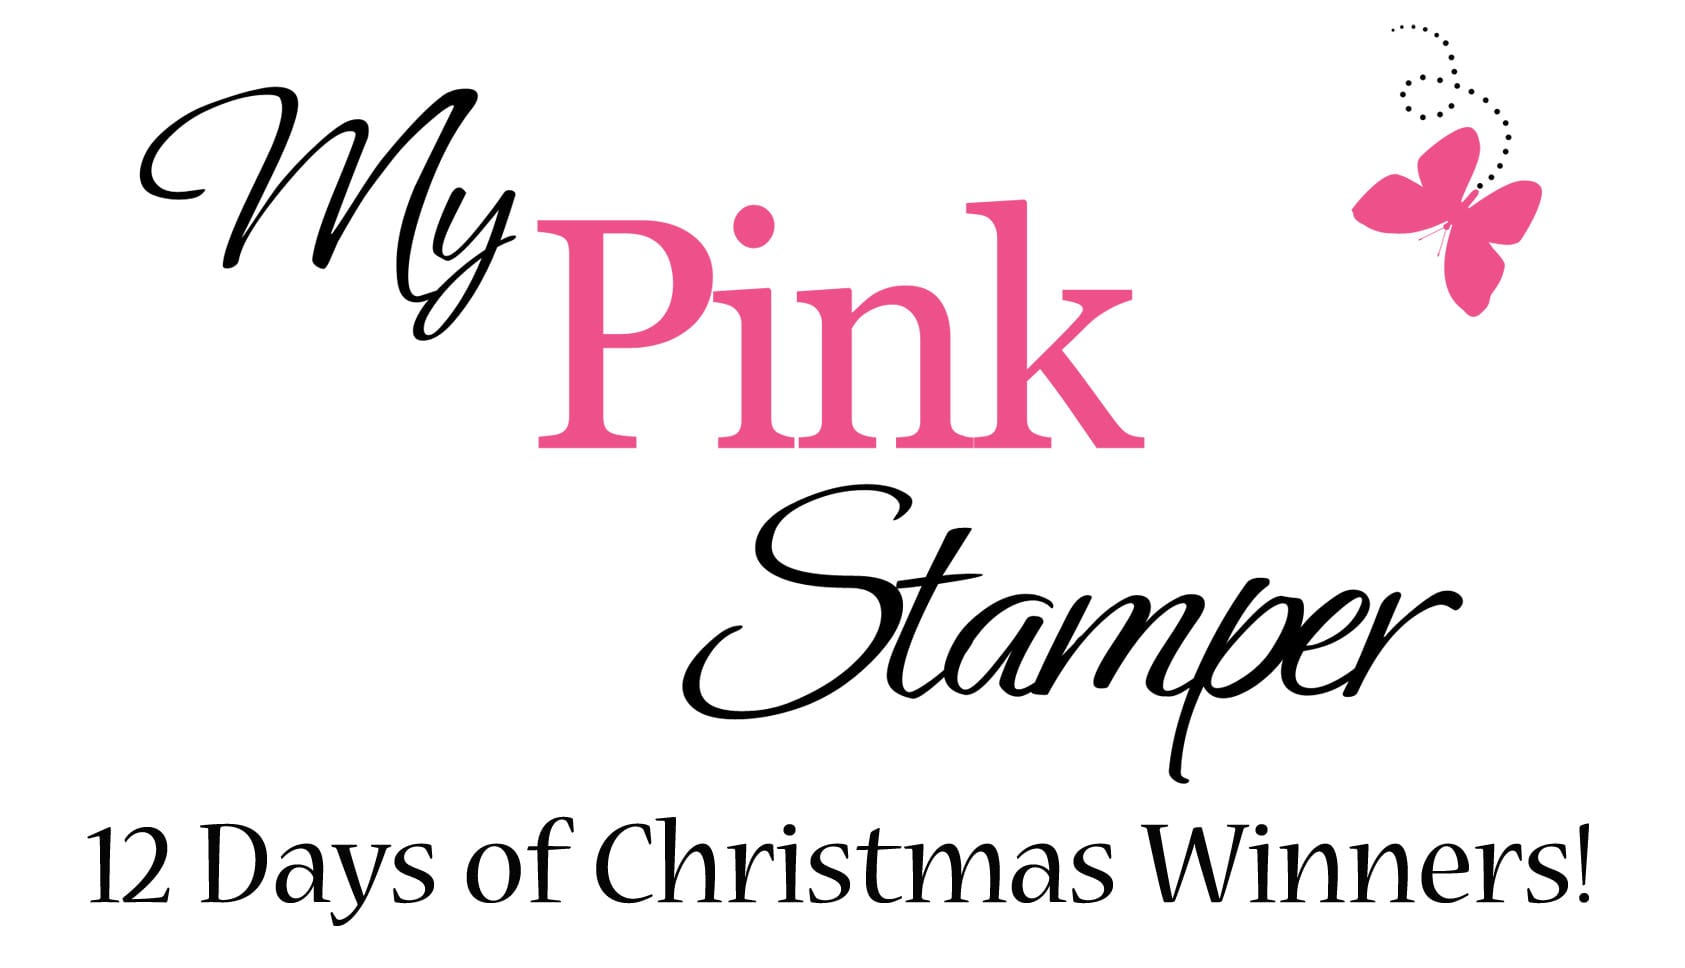 12 Days of Christmas Winners & Pink Candy Winner